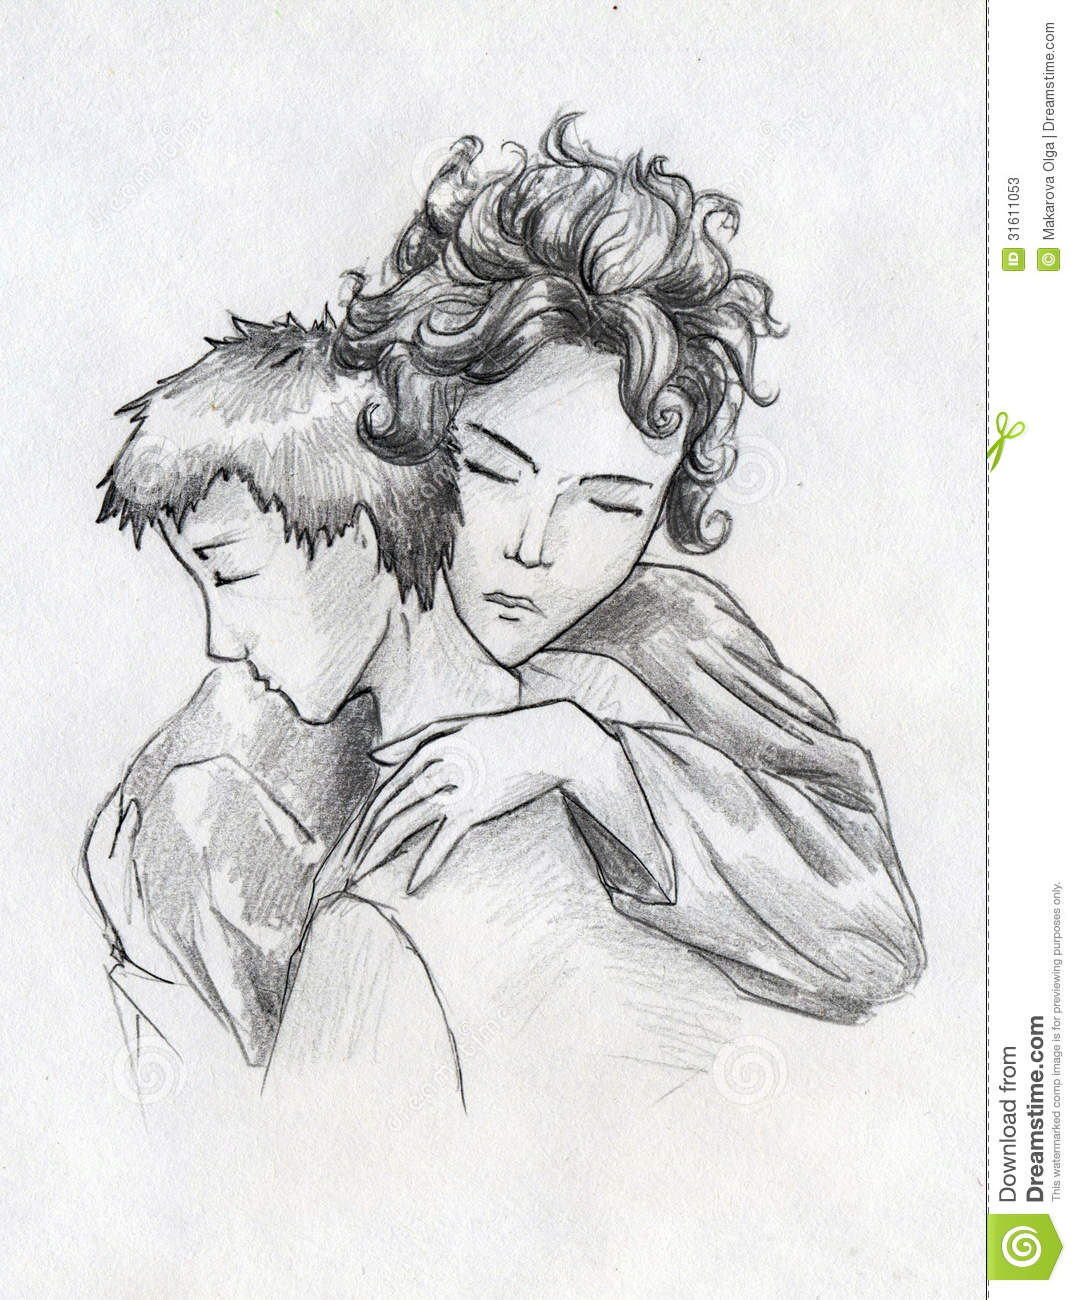 Mother and son tender moment hand drawn pencil sketch